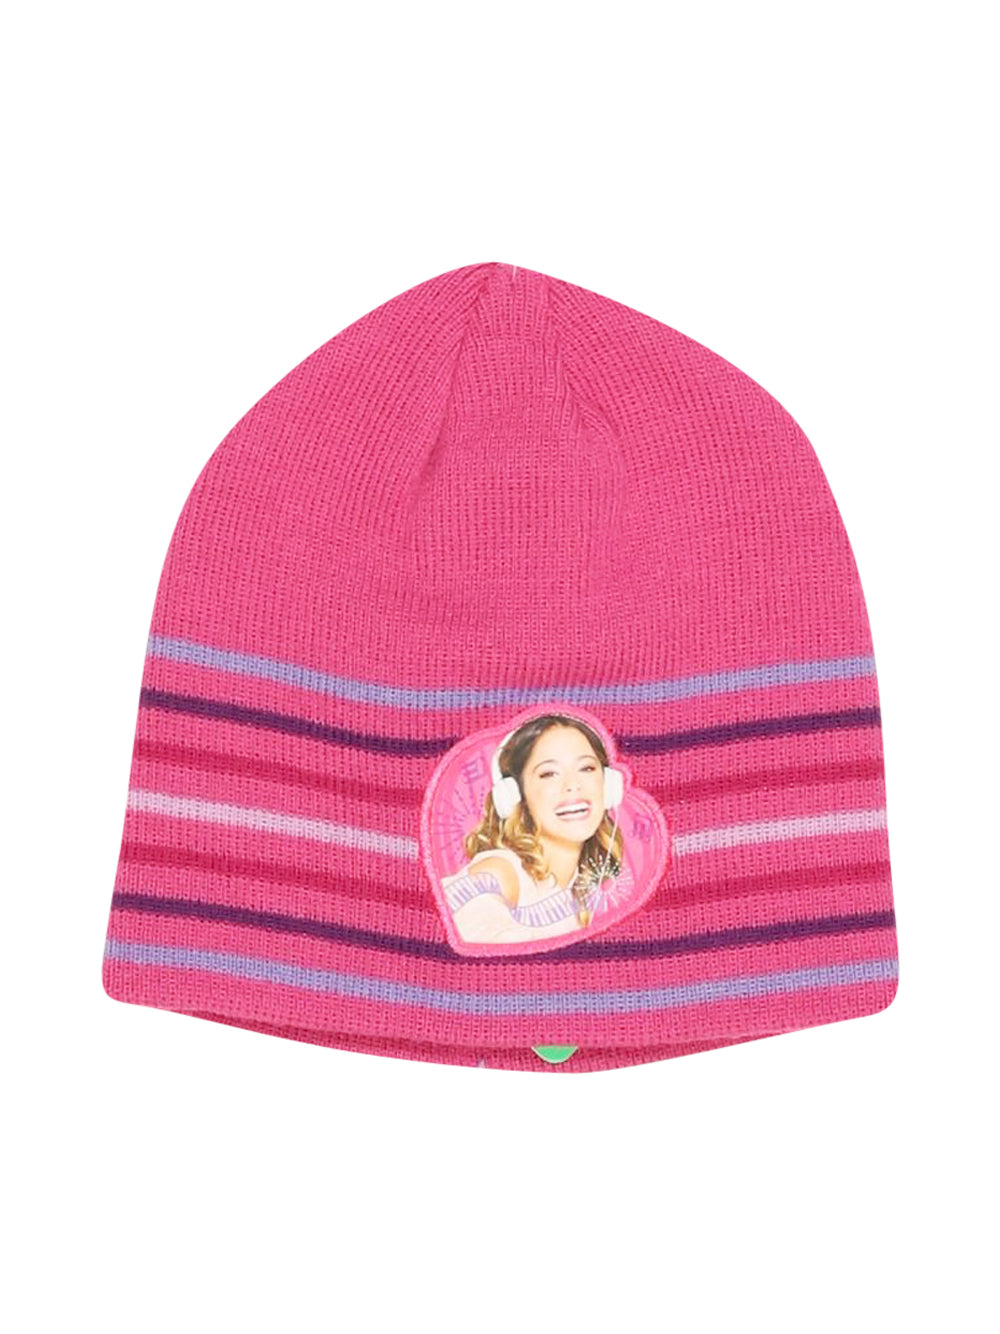 Front photo of Preloved Disney Pink Girl's hat - size 5-6 yrs